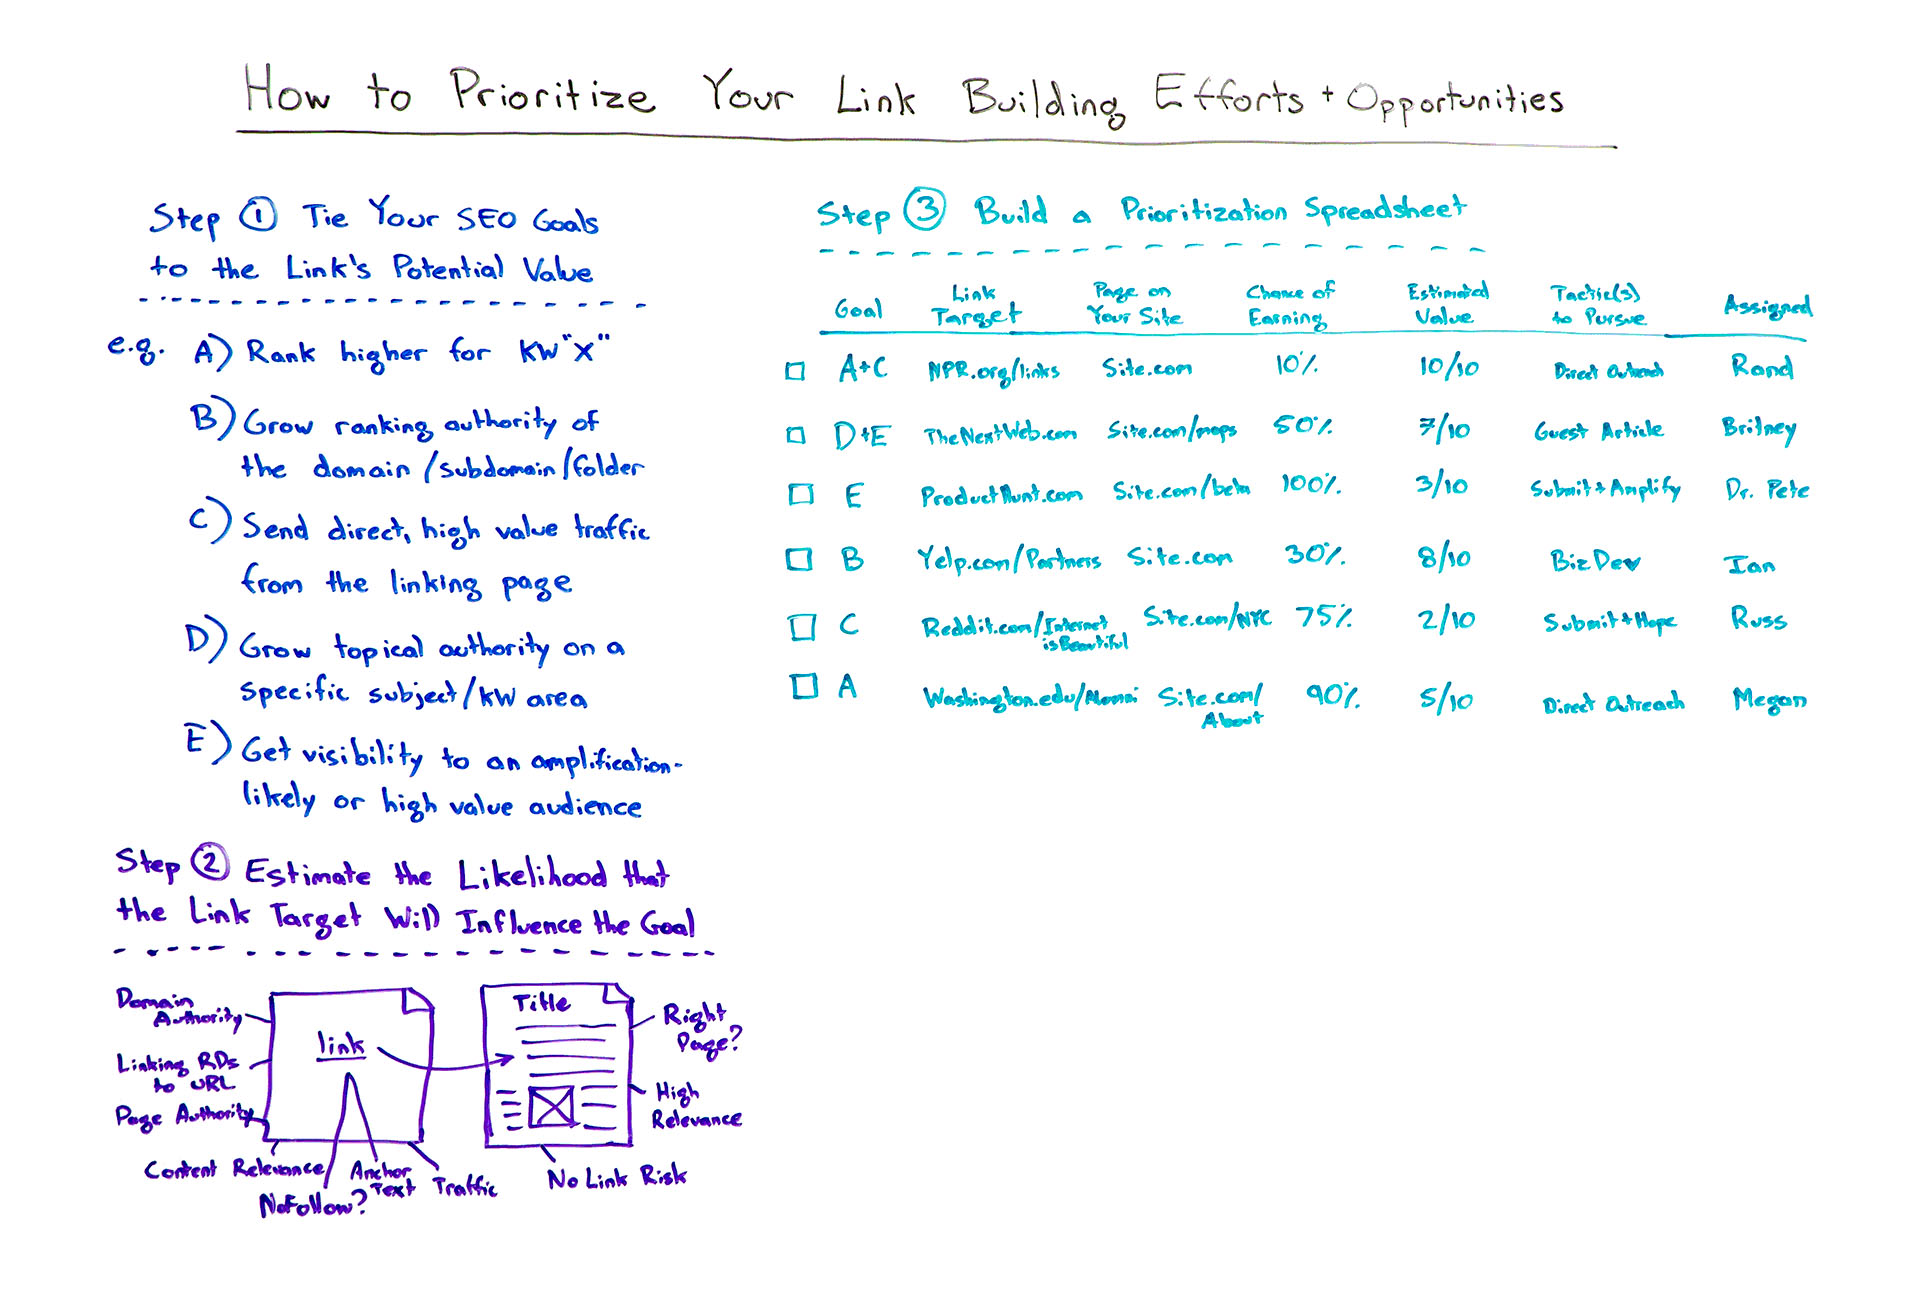 Prioritize your link building efforts and opportunities